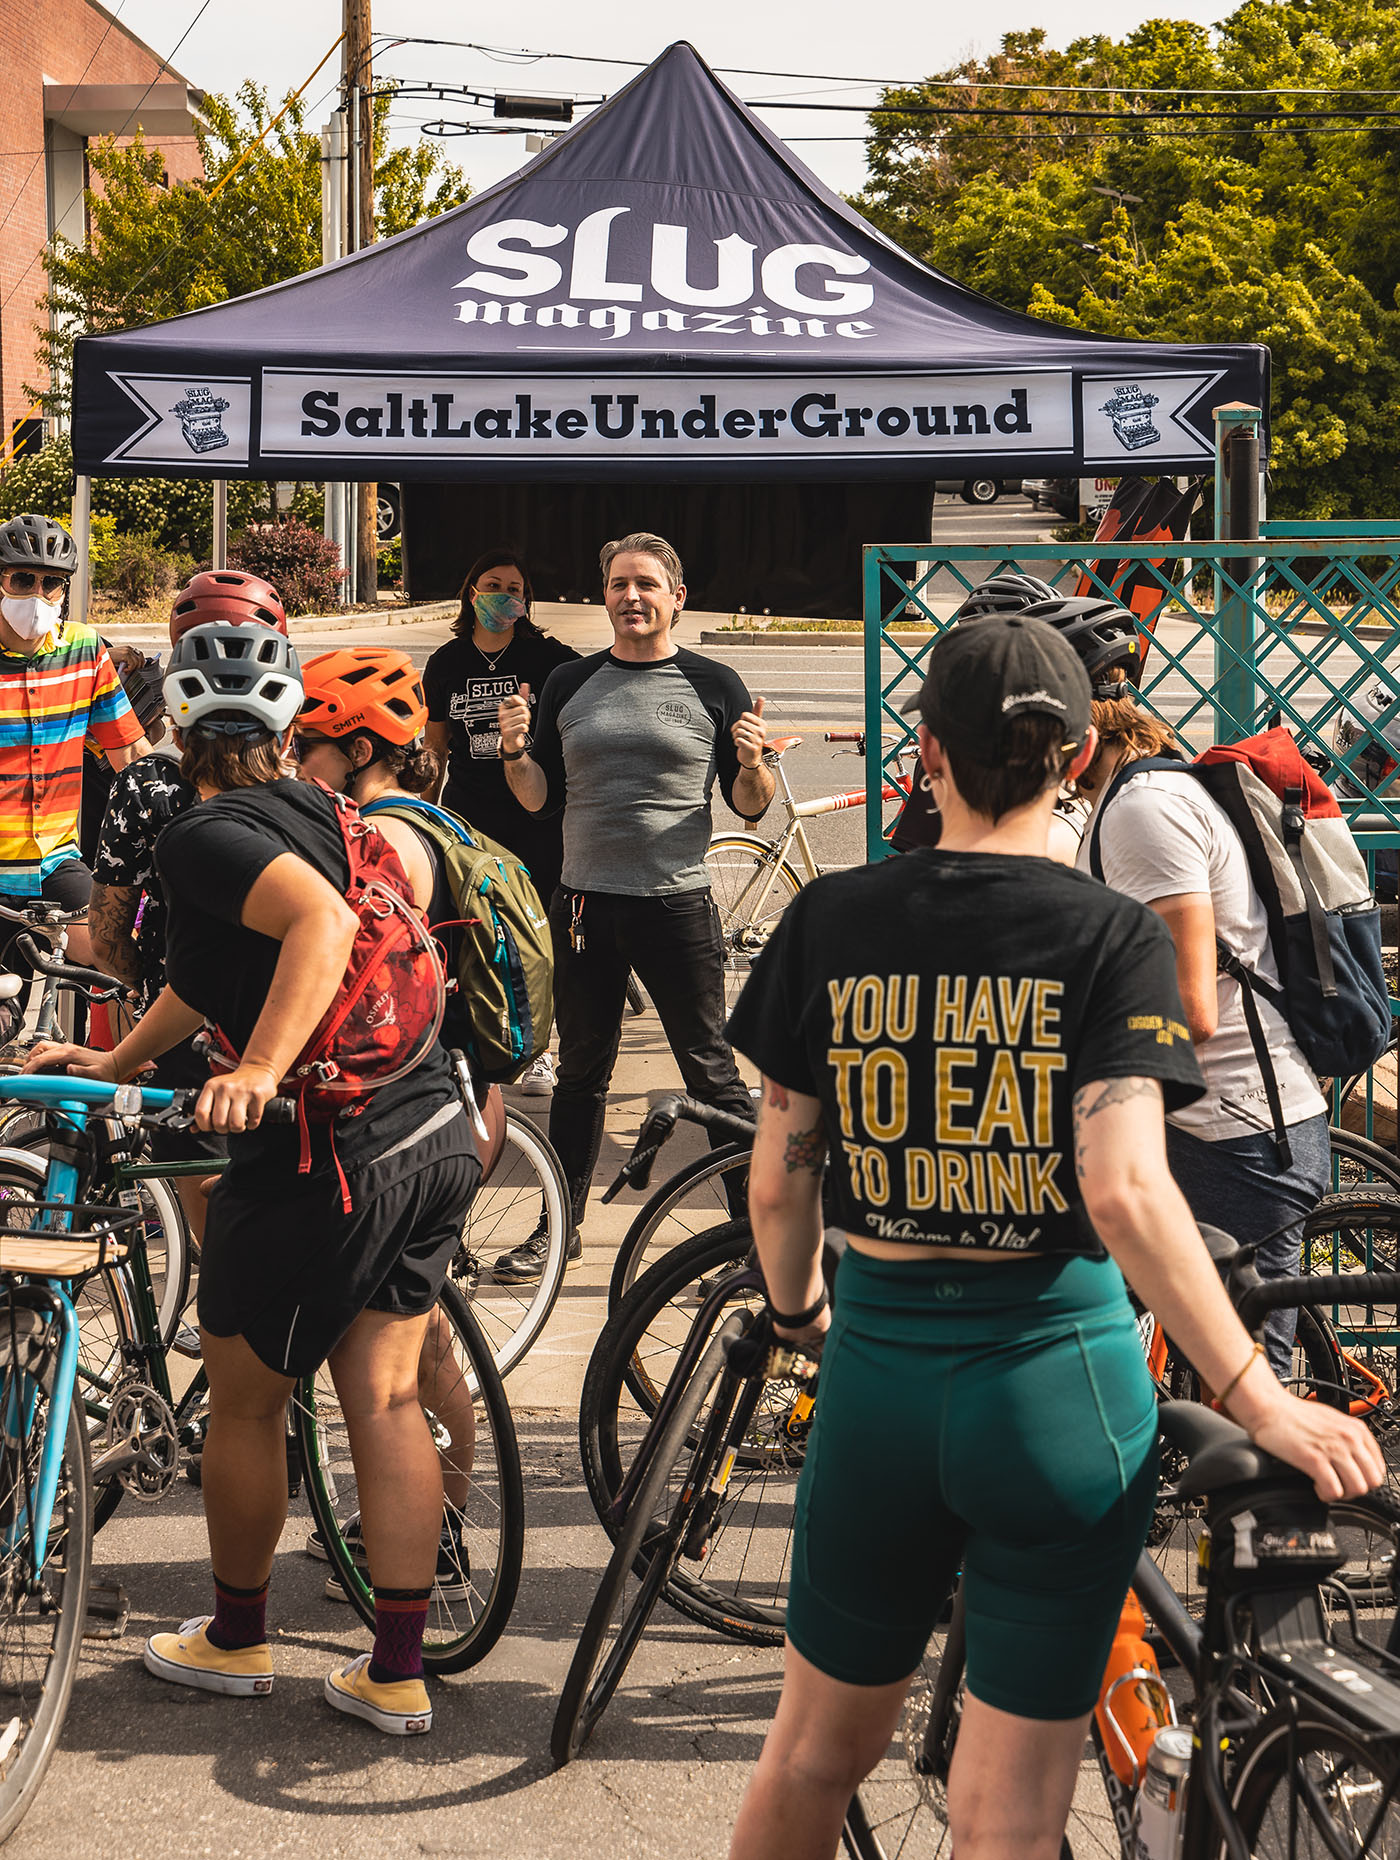 Racers from across the valley converged at Saturday Cycles in hopes of becoming this years' champion at the 9th Annual SLUG Cat bike race.